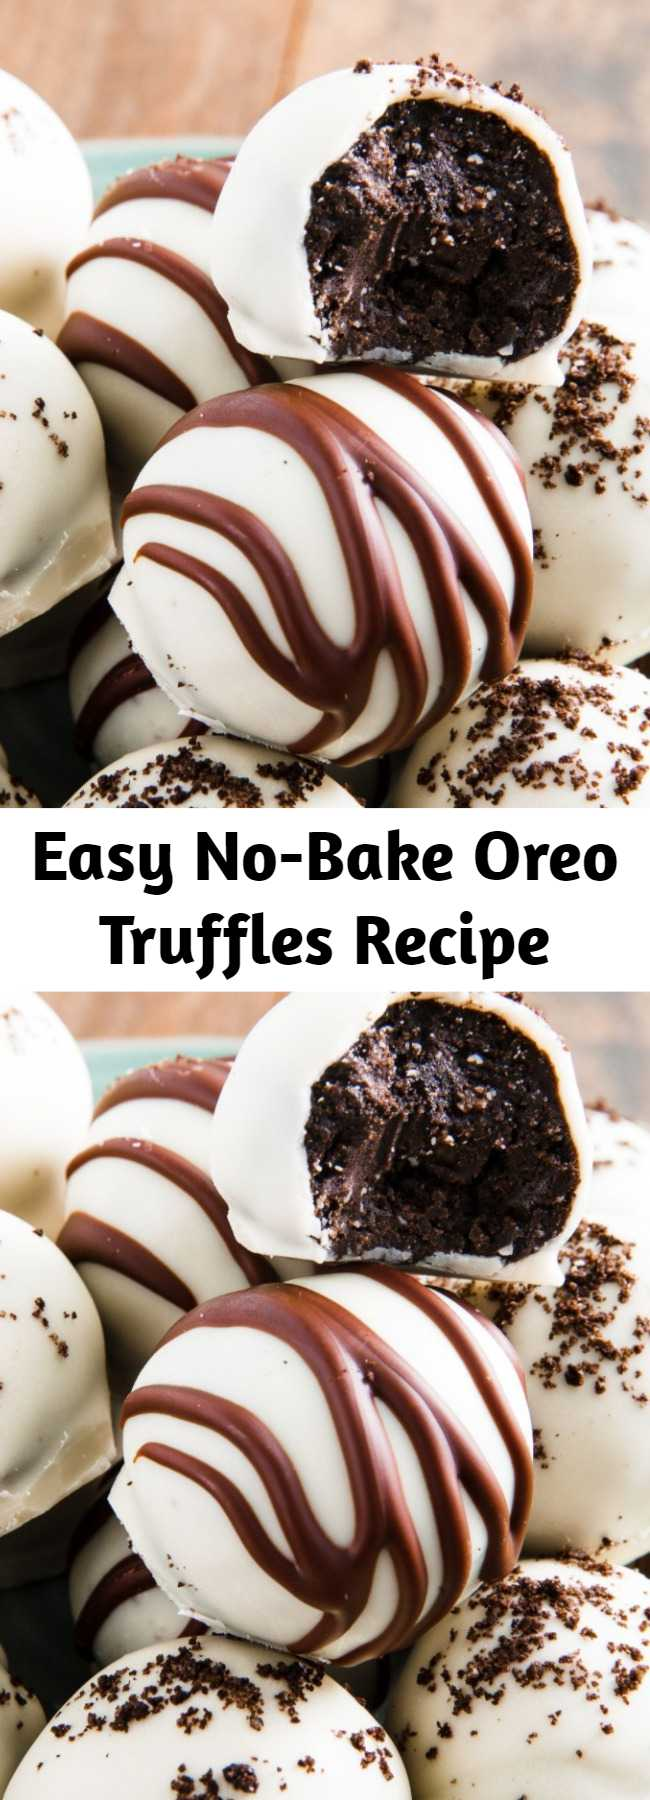 Easy No-Bake Oreo Truffles Recipe - When it comes to homemade desserts, it doesn't get much easier than Oreo truffles. You only need four ingredients, and they taste like chocolate cheesecake wrapped in even more chocolate, only you don't have to worry about water baths or preheating the oven.